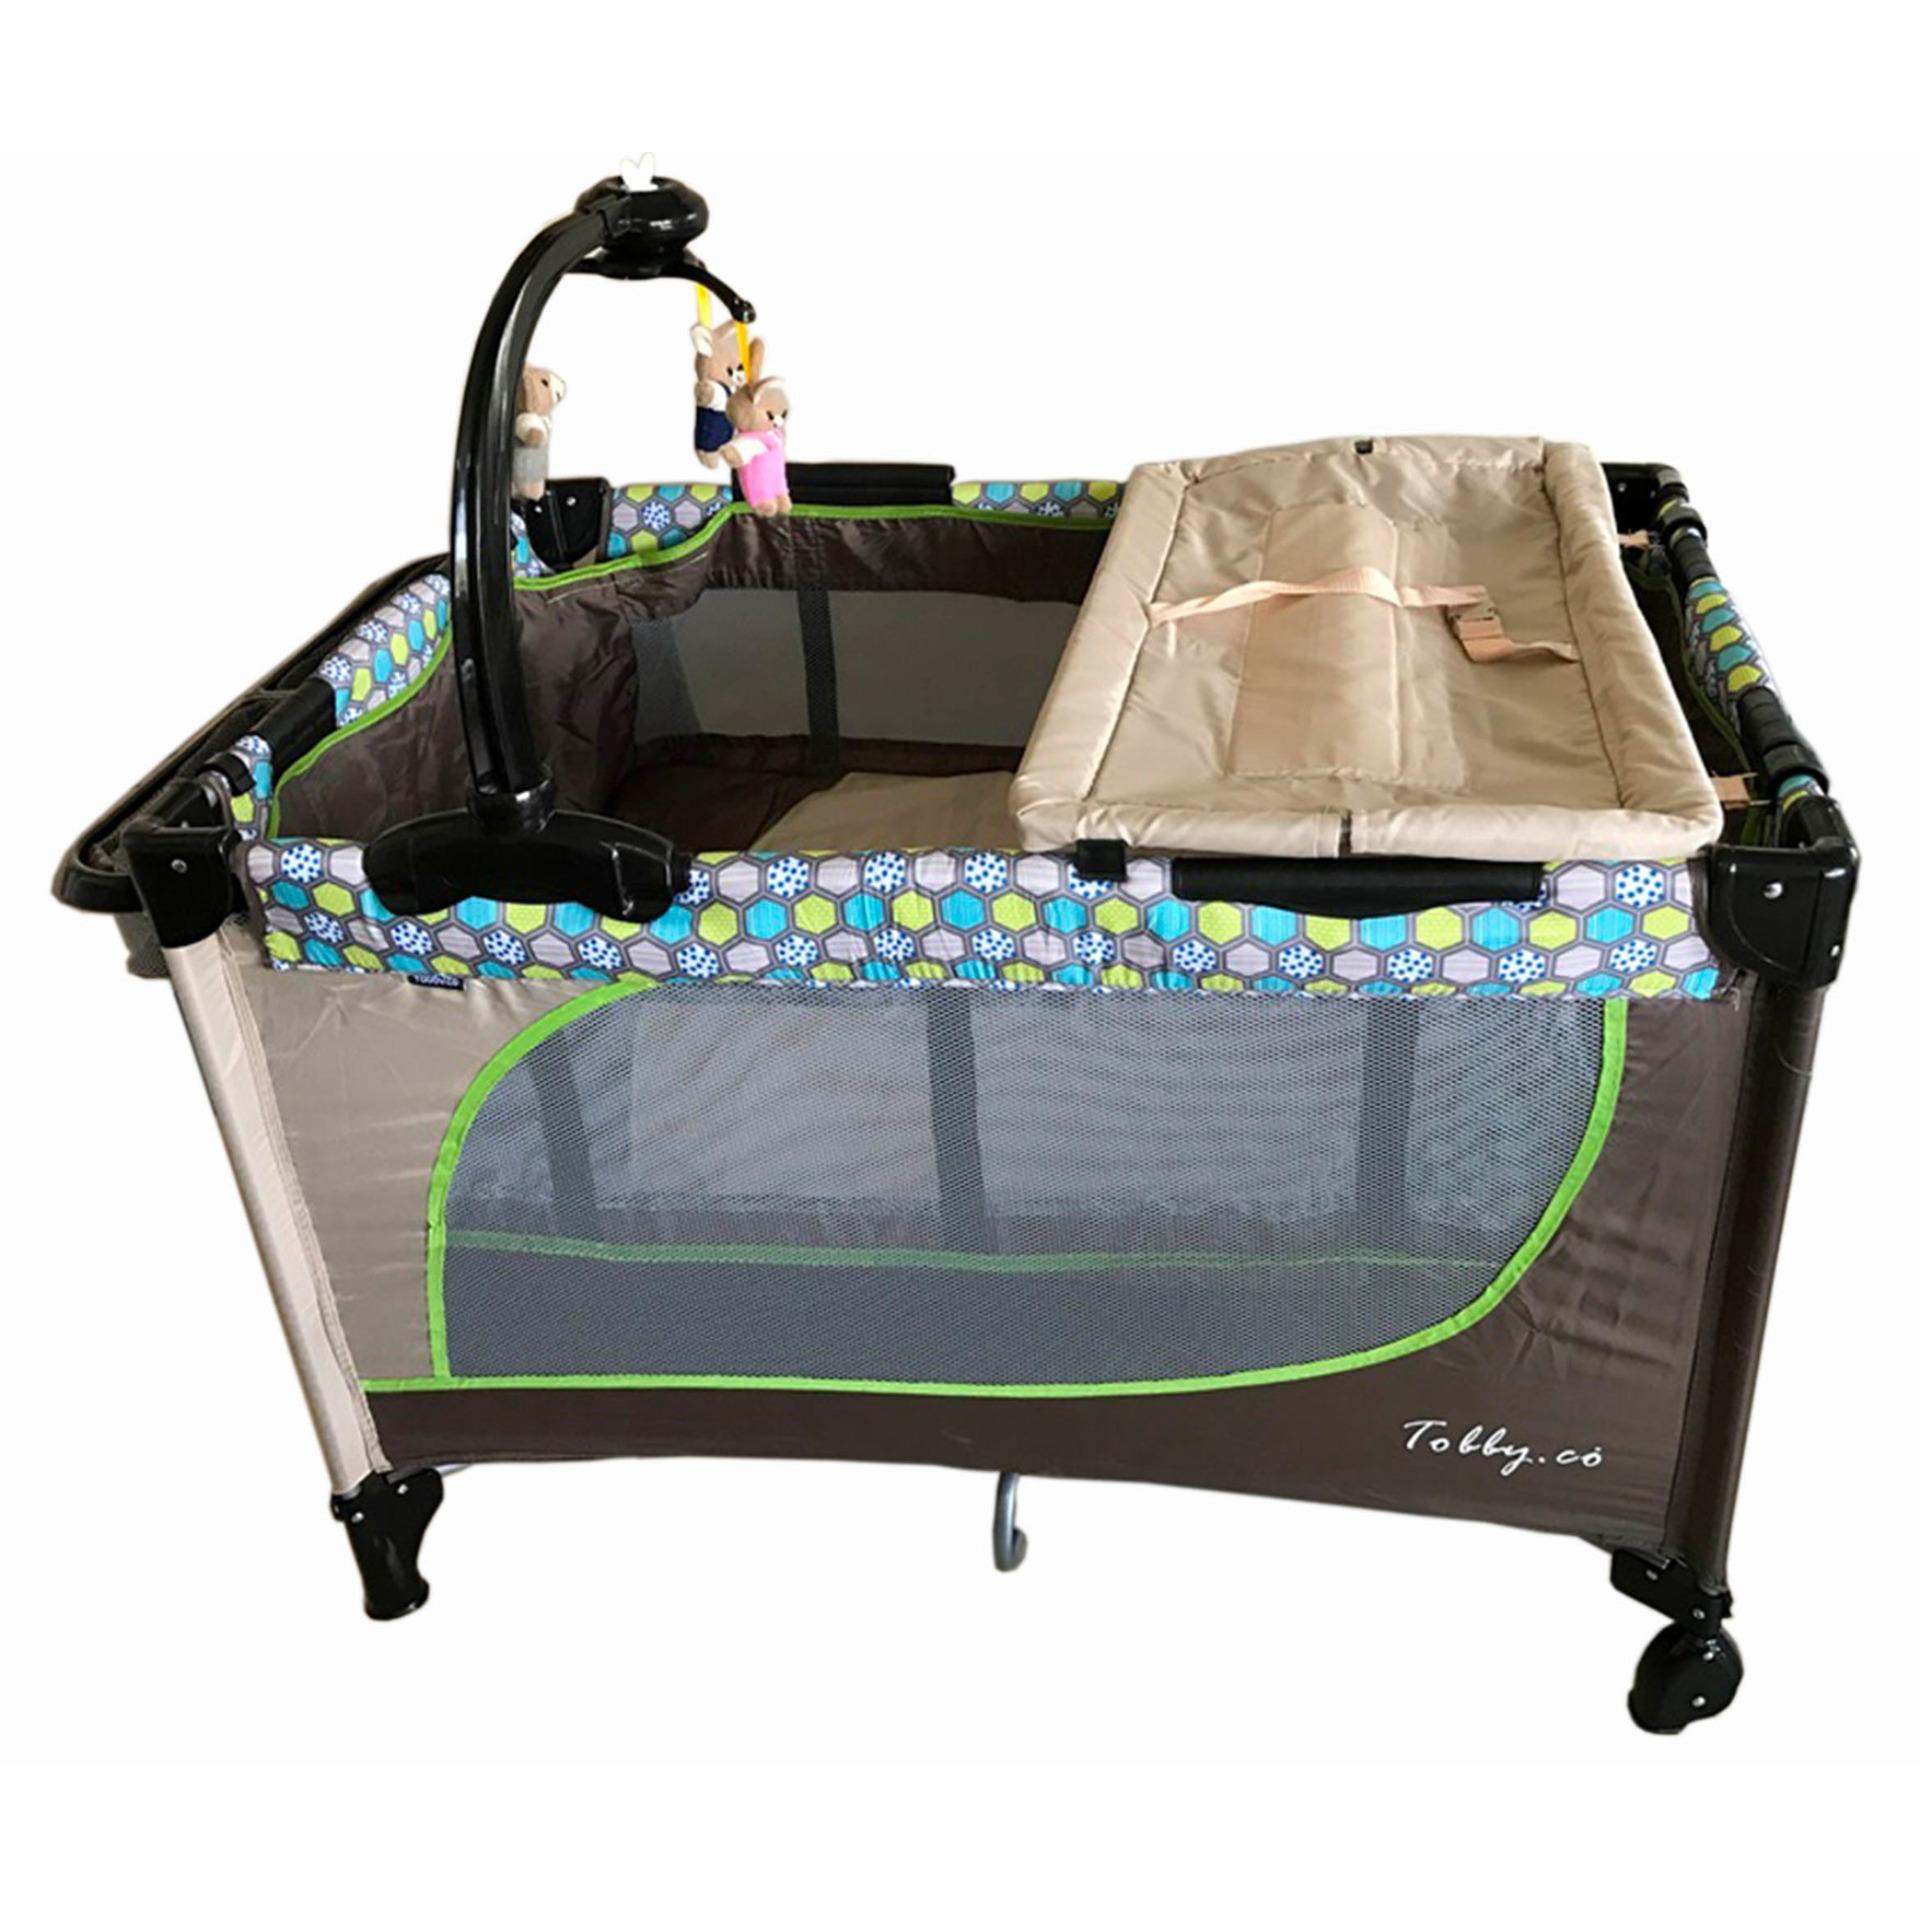 Crib for sale tarlac - Baby 1st Playpen Crib Tobby Co With Accessories Brown Beige Lazada Ph